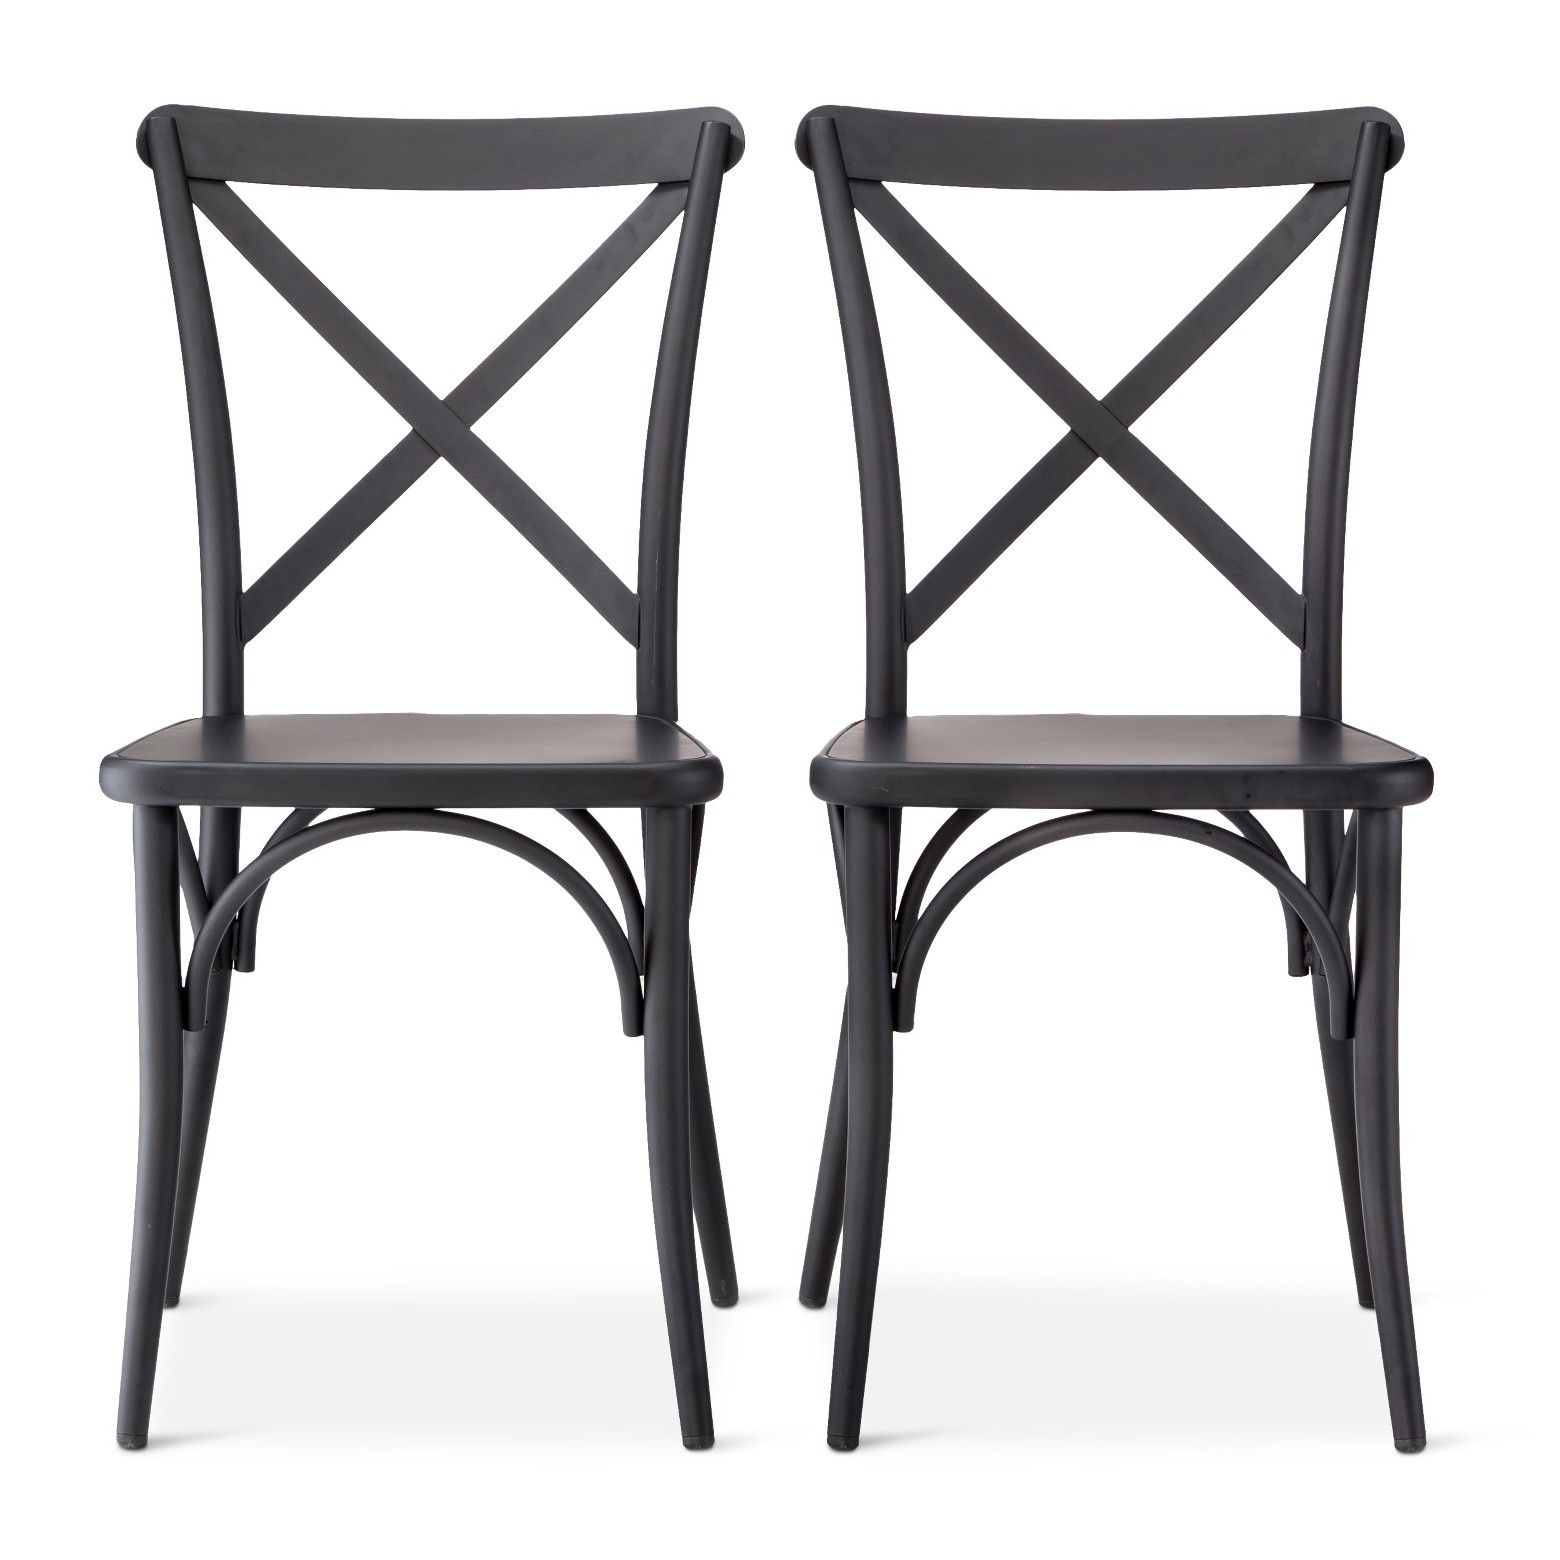 Complete your bistro with these French Metal Bistro Chairs